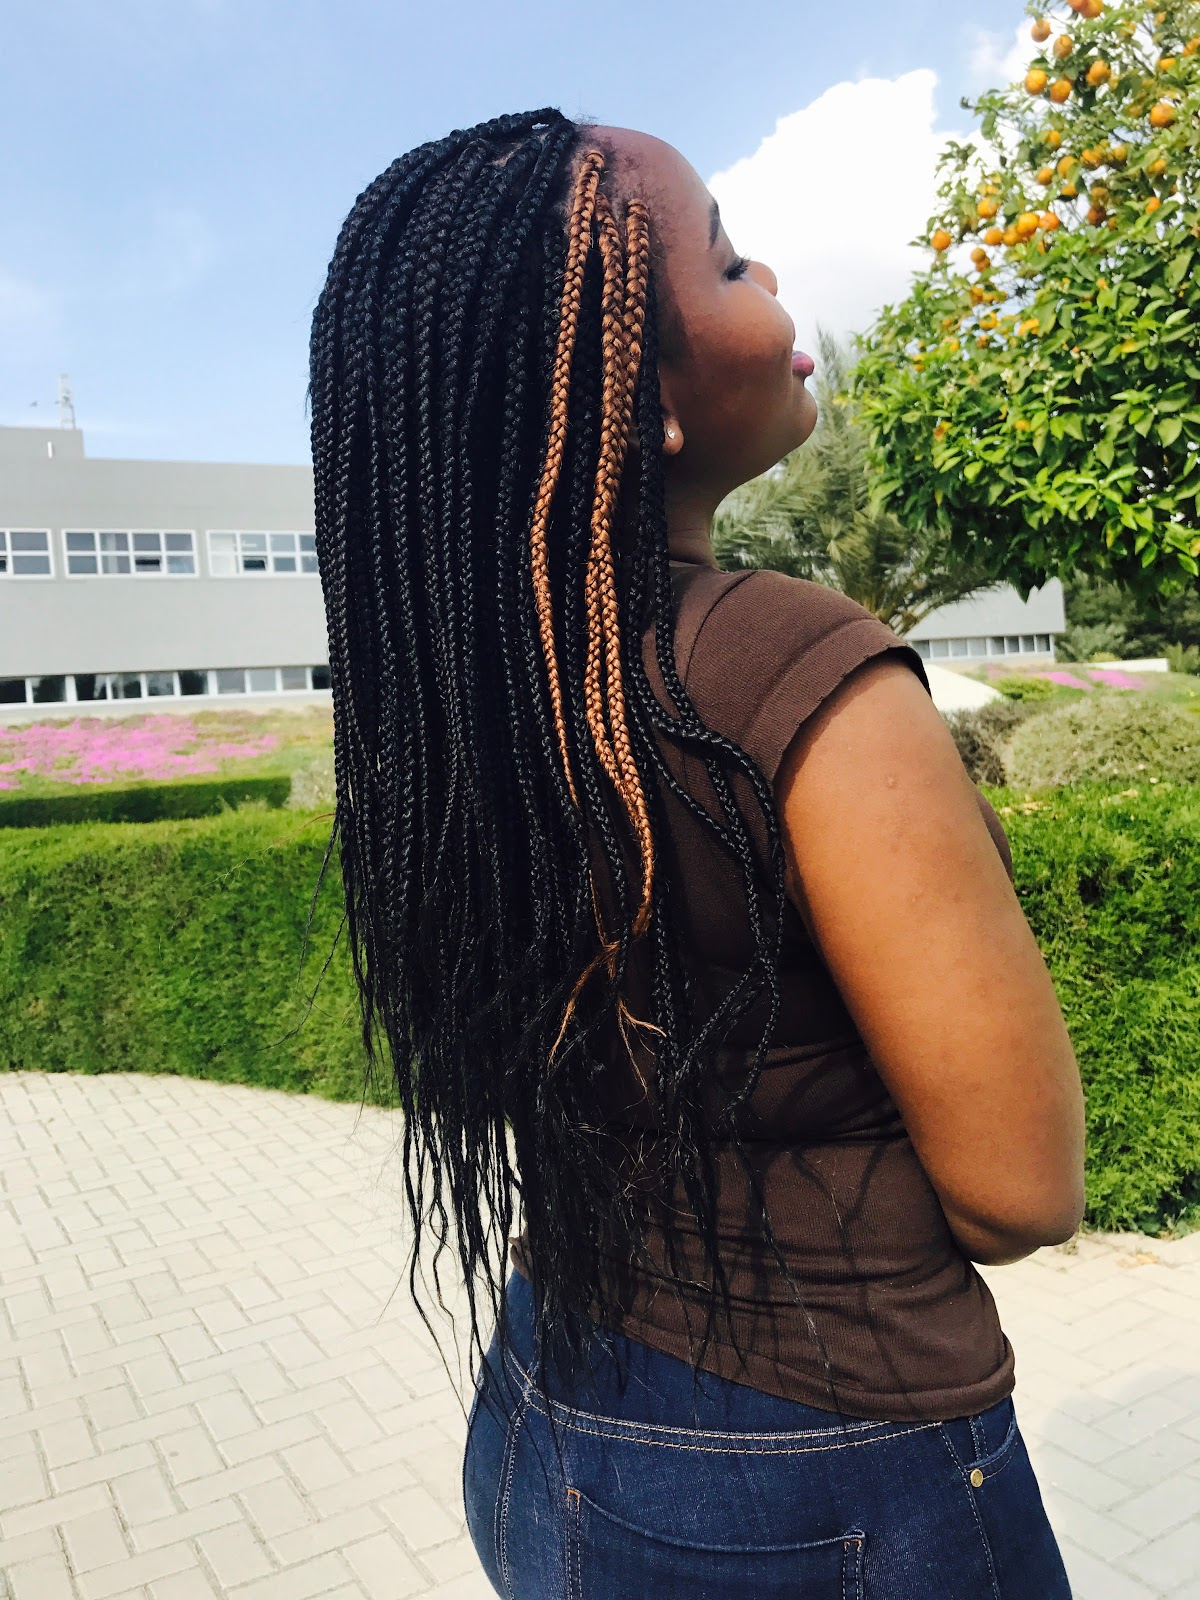 6 Great Things I Love About Box Braids